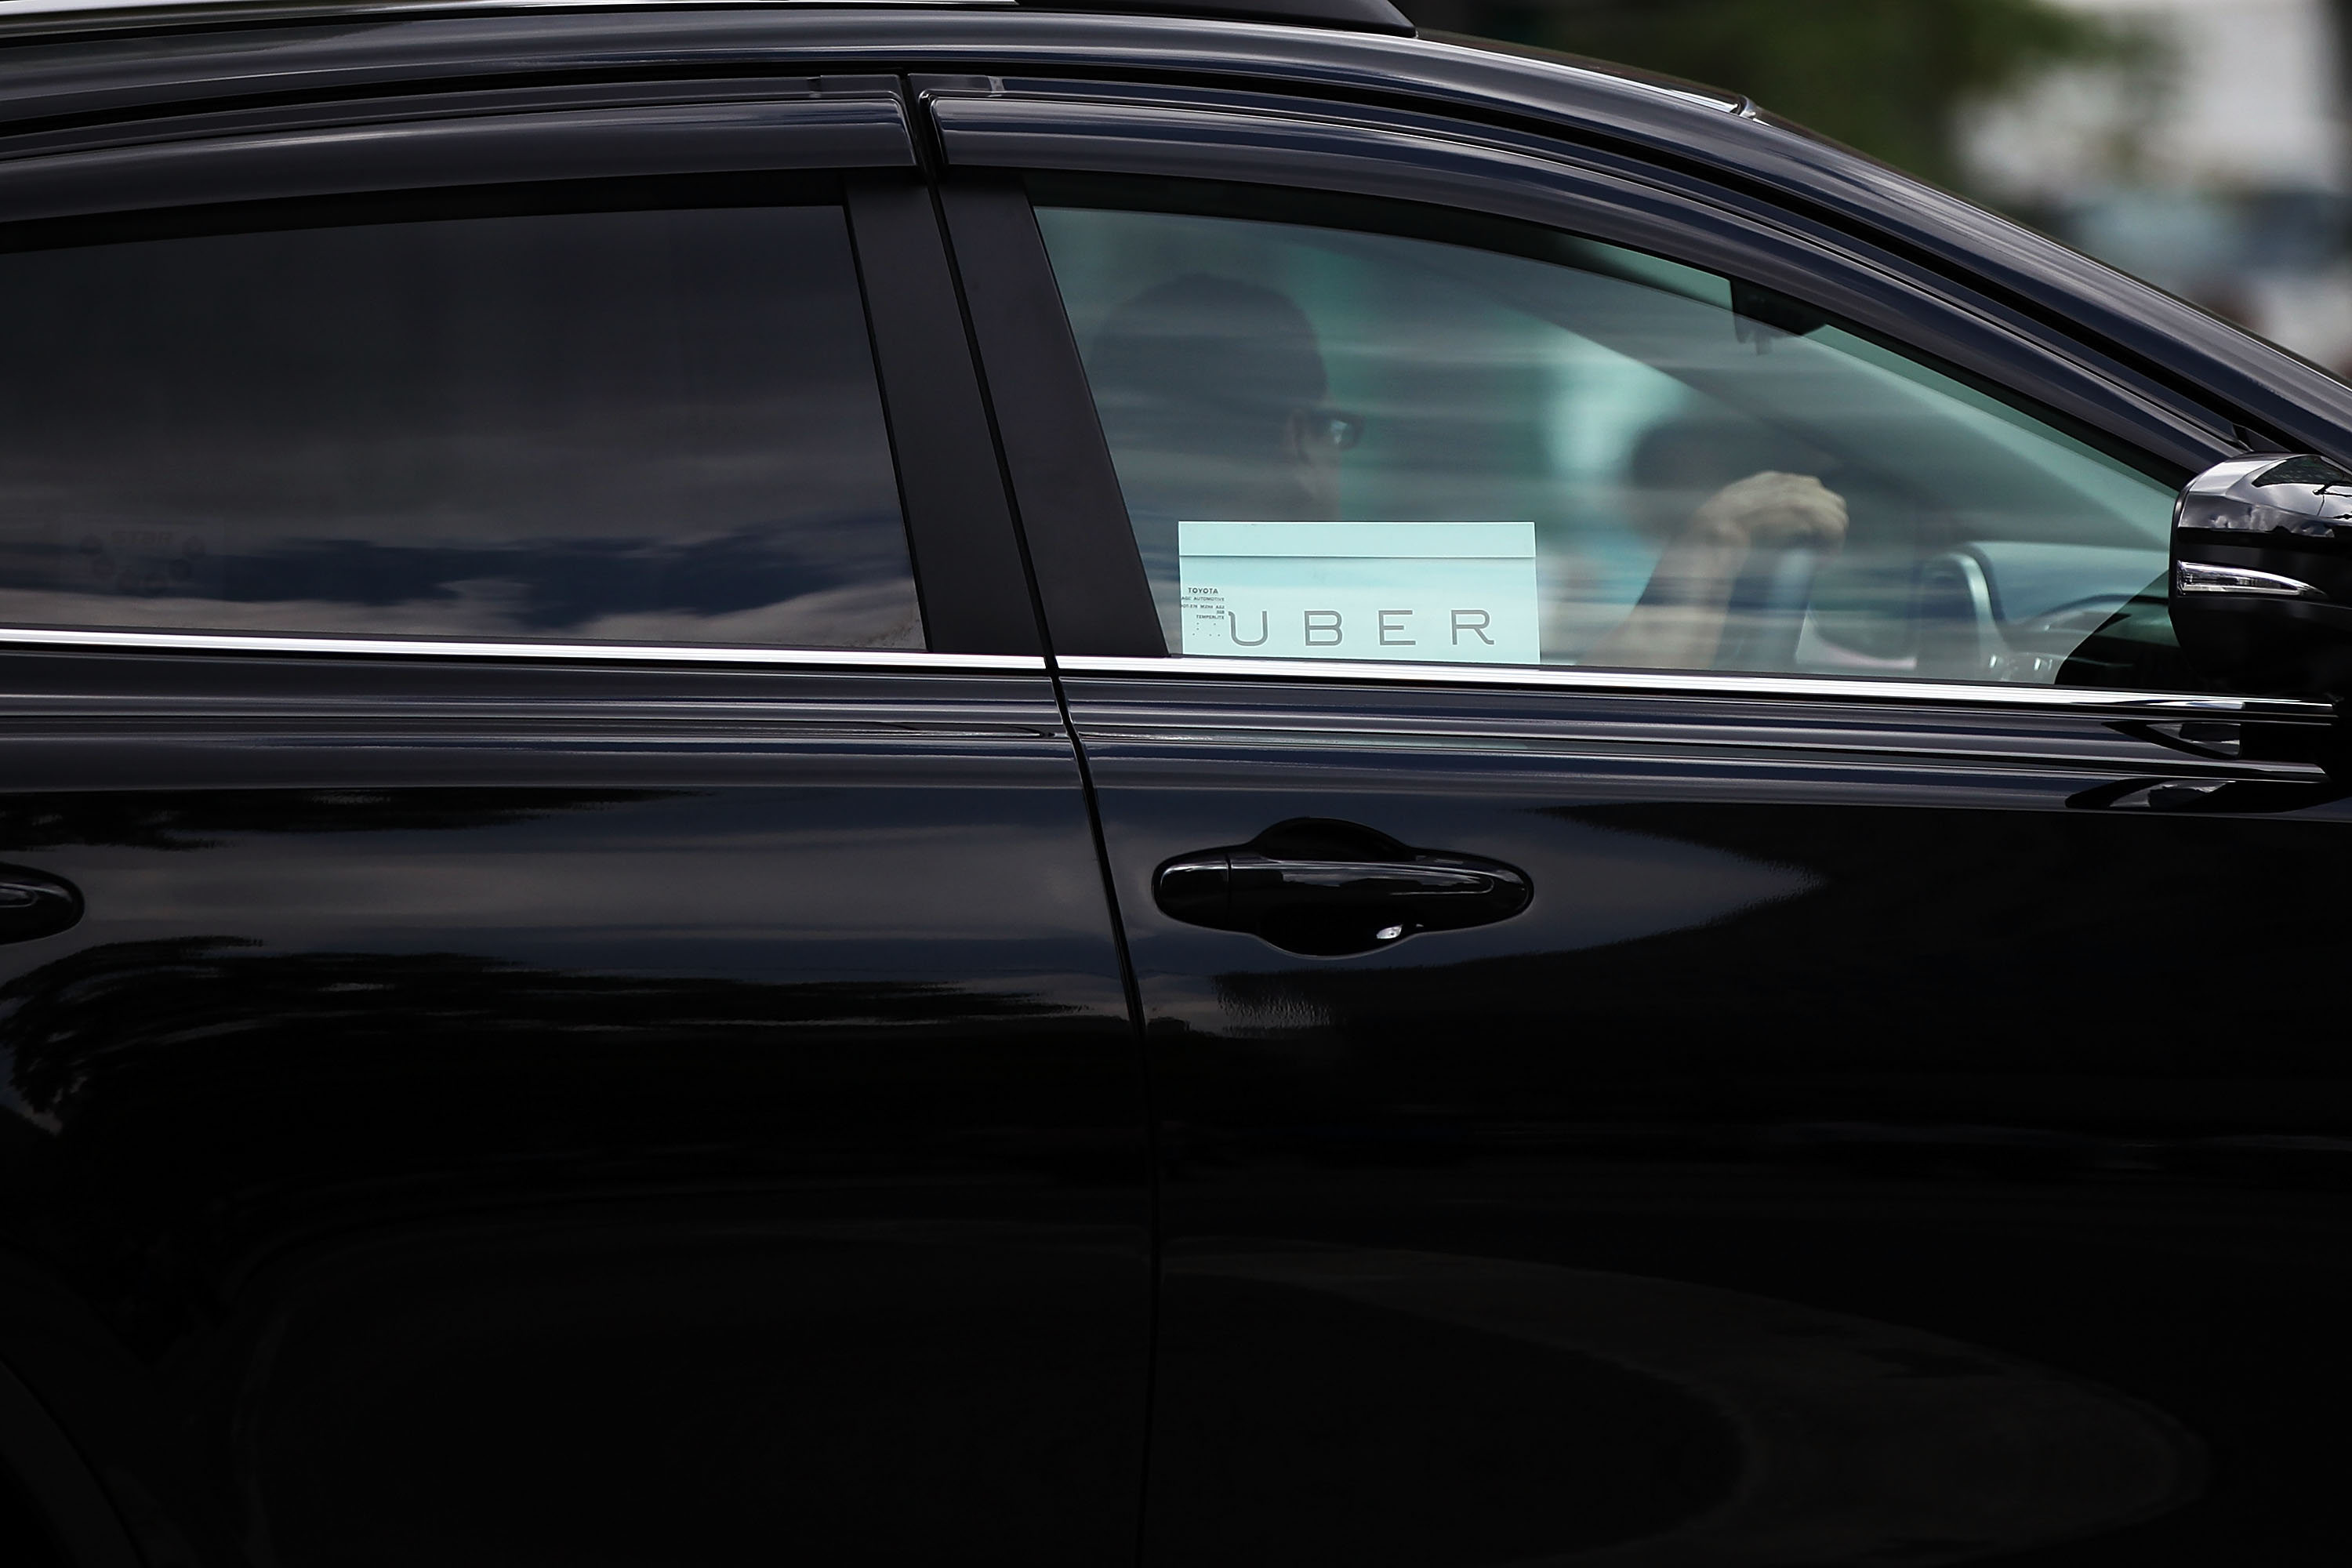 Predators masquerading as drivers for ride-hailing services have preyed upon clients who get into the wrong car. There are ways to protect yourself. (Getty Images)